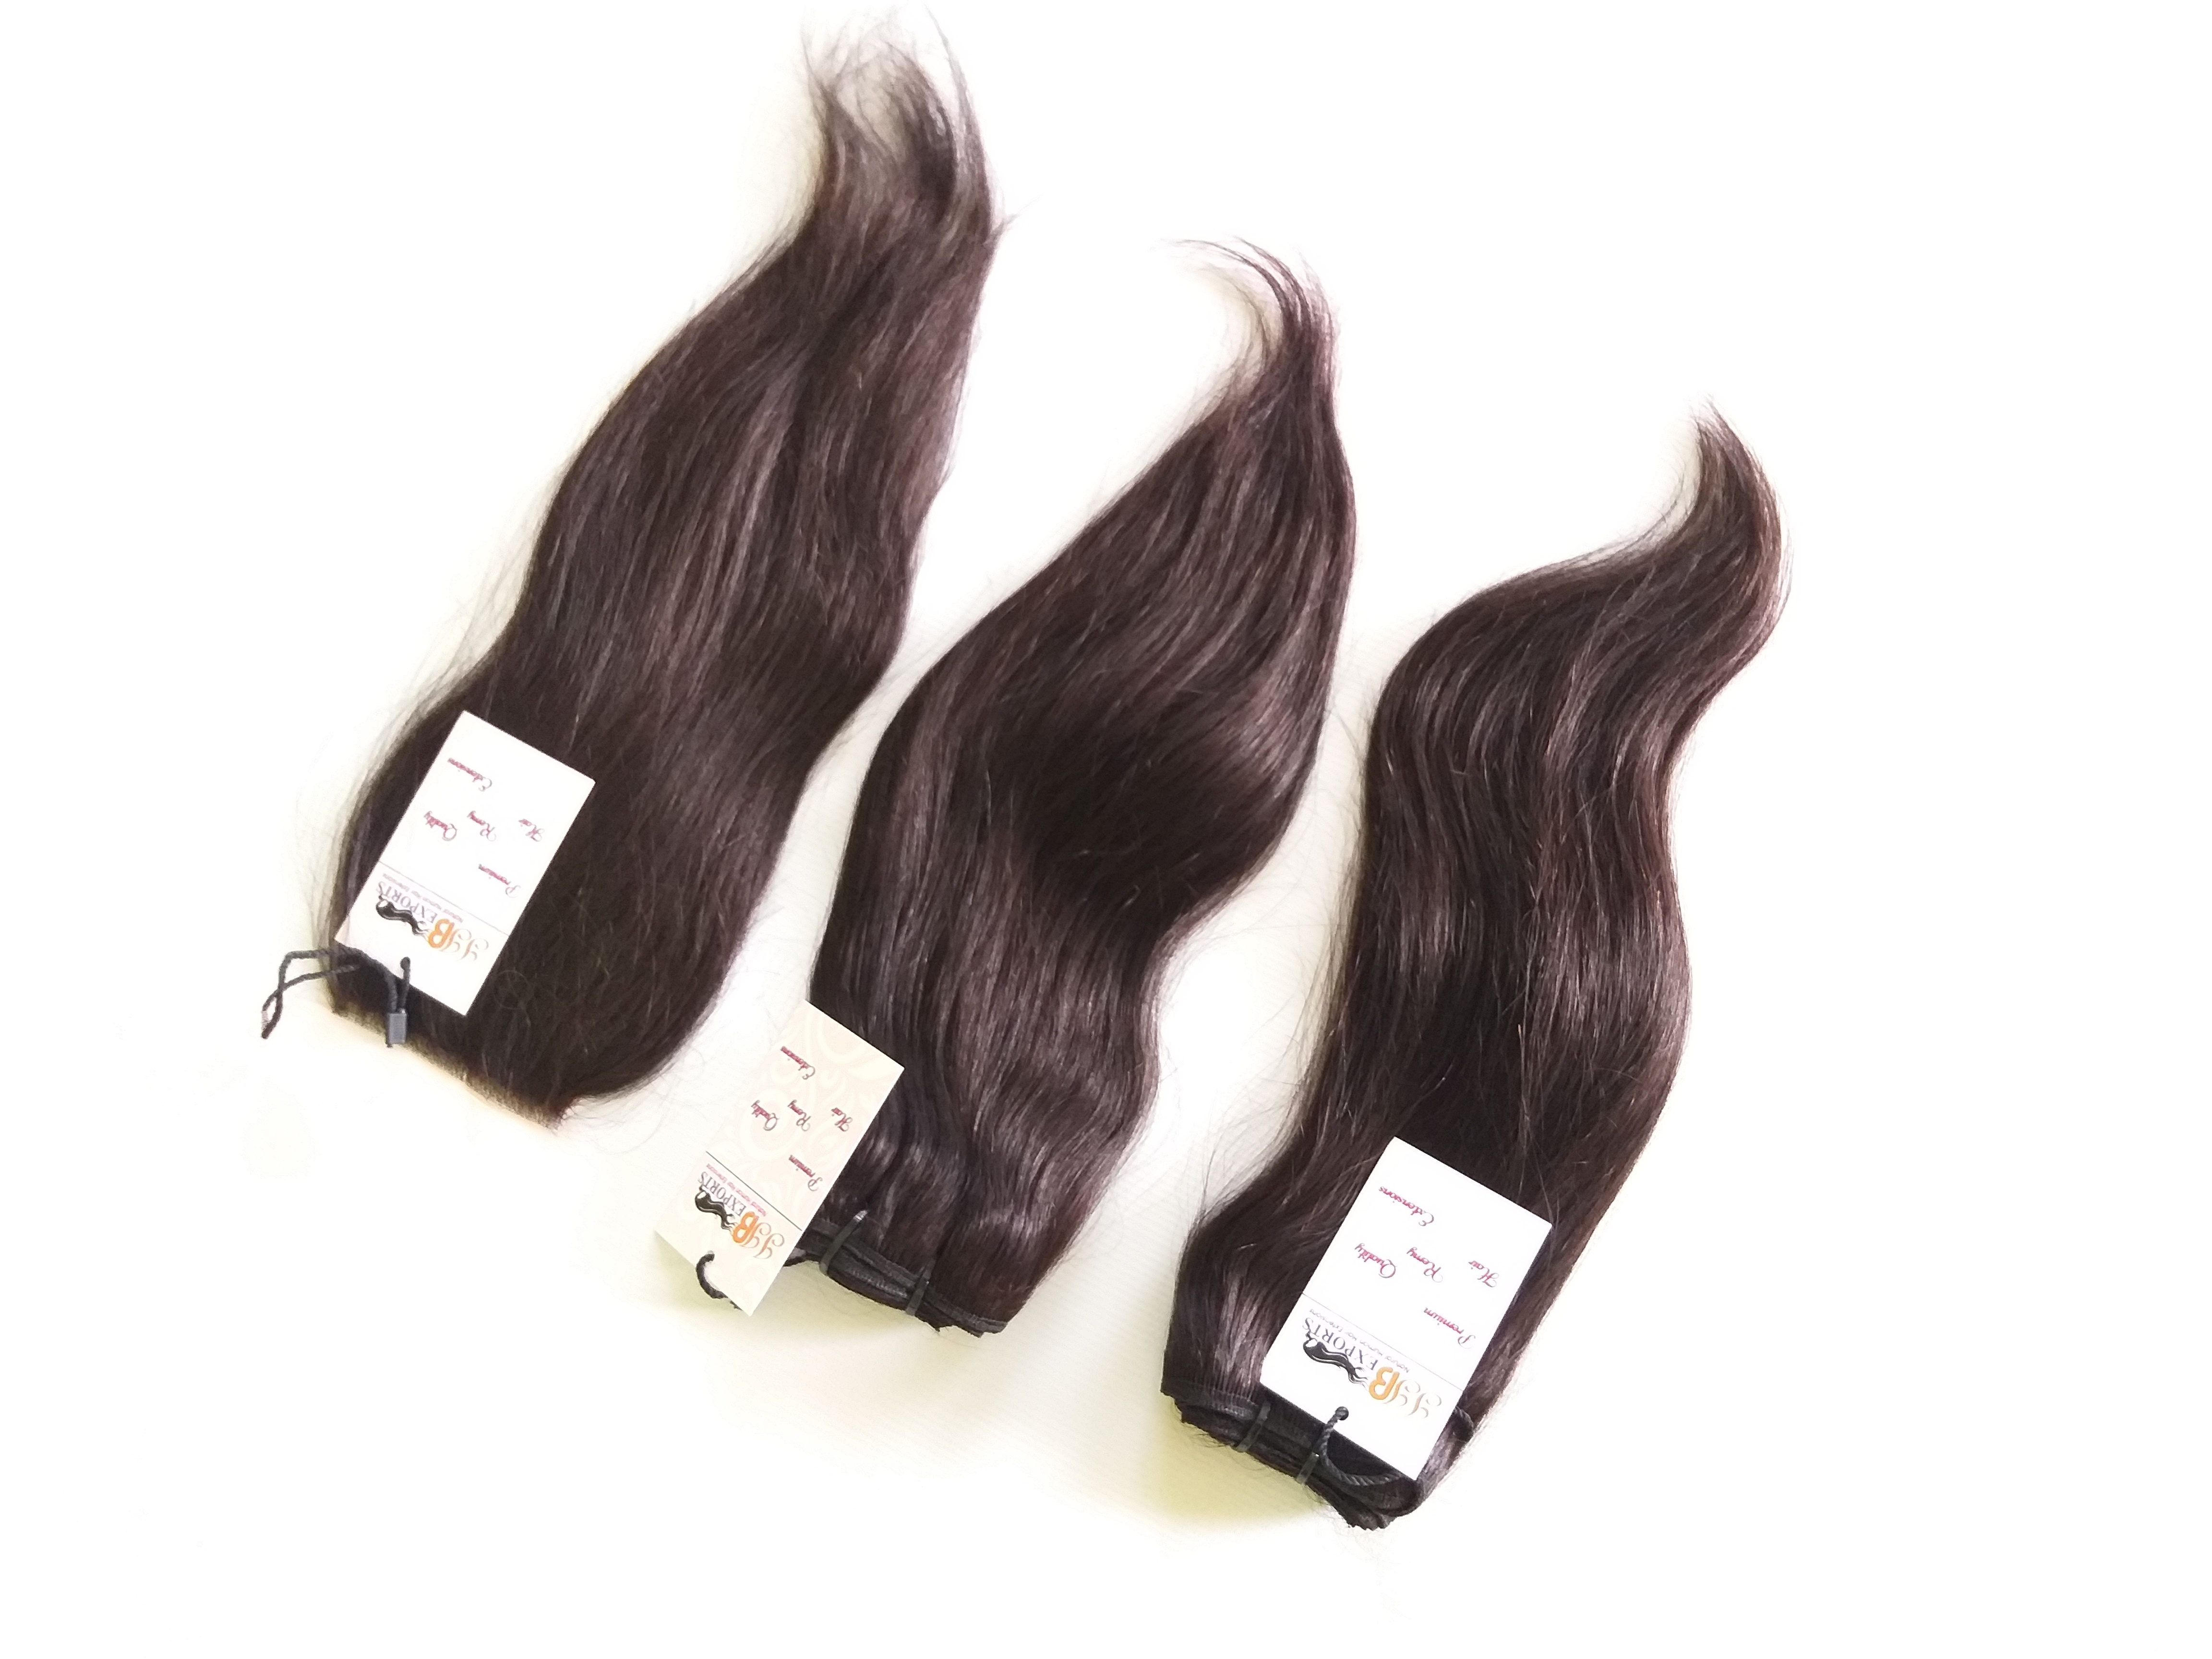 High quality raw indian virgin straight/curly/wavy/bodywave remy human hair extensions